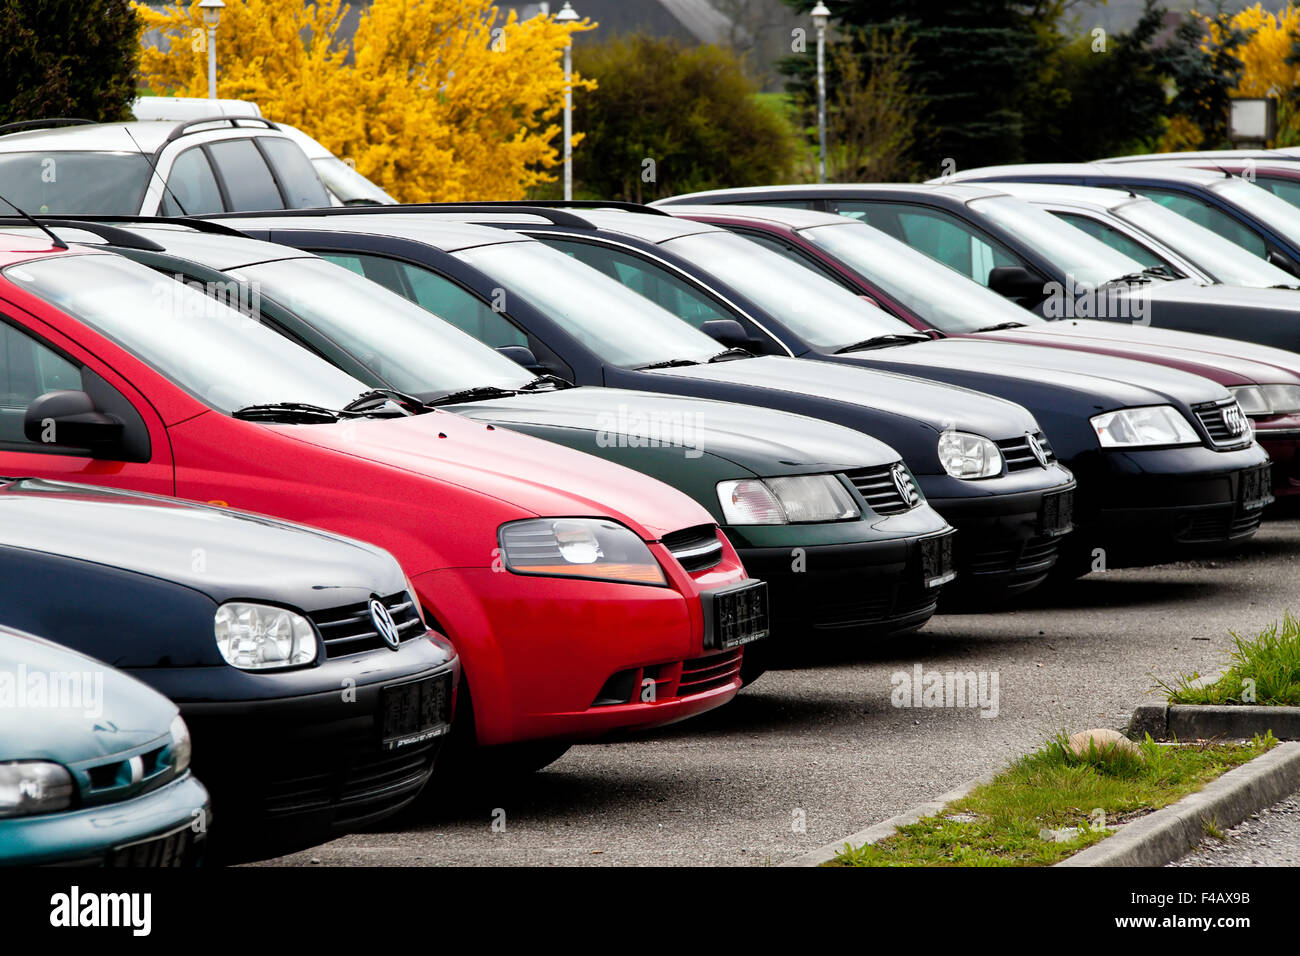 Honda Dealership Queens >> Car Dealers Stock Photos & Car Dealers Stock Images - Alamy